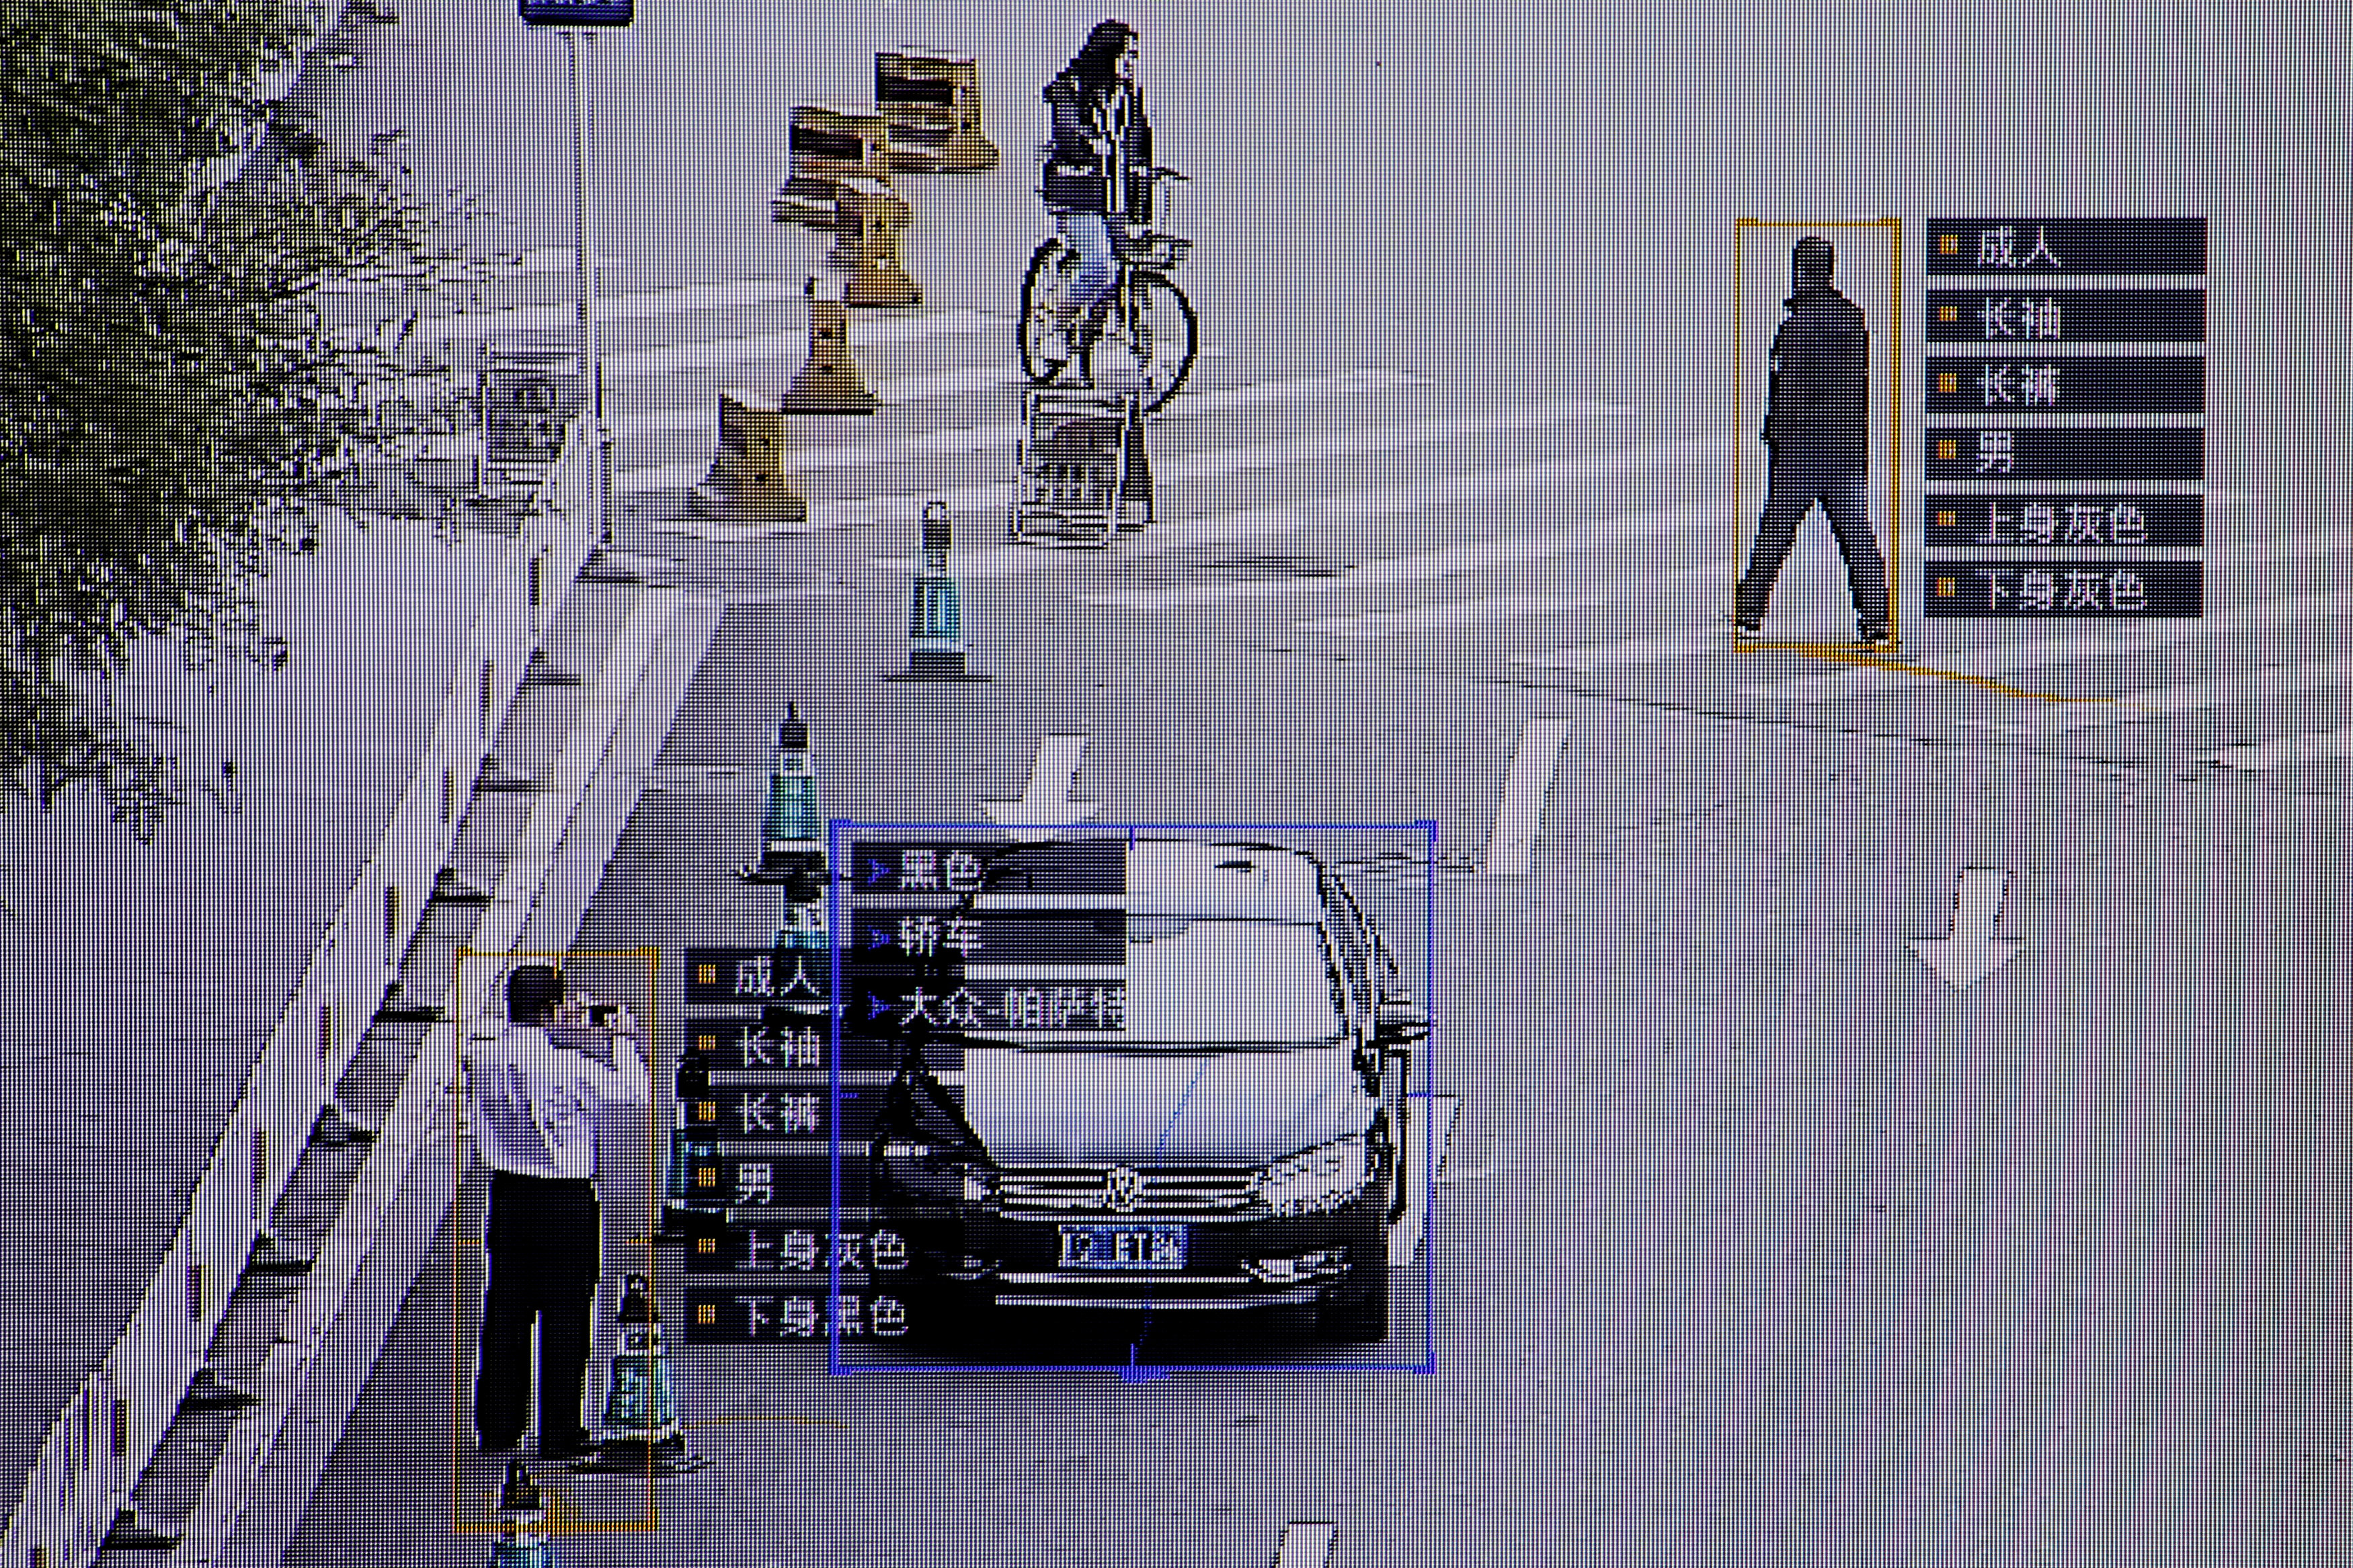 SenseTime surveillance software identifying details about people and vehicles runs as a demonstration at the company's office in Beijing